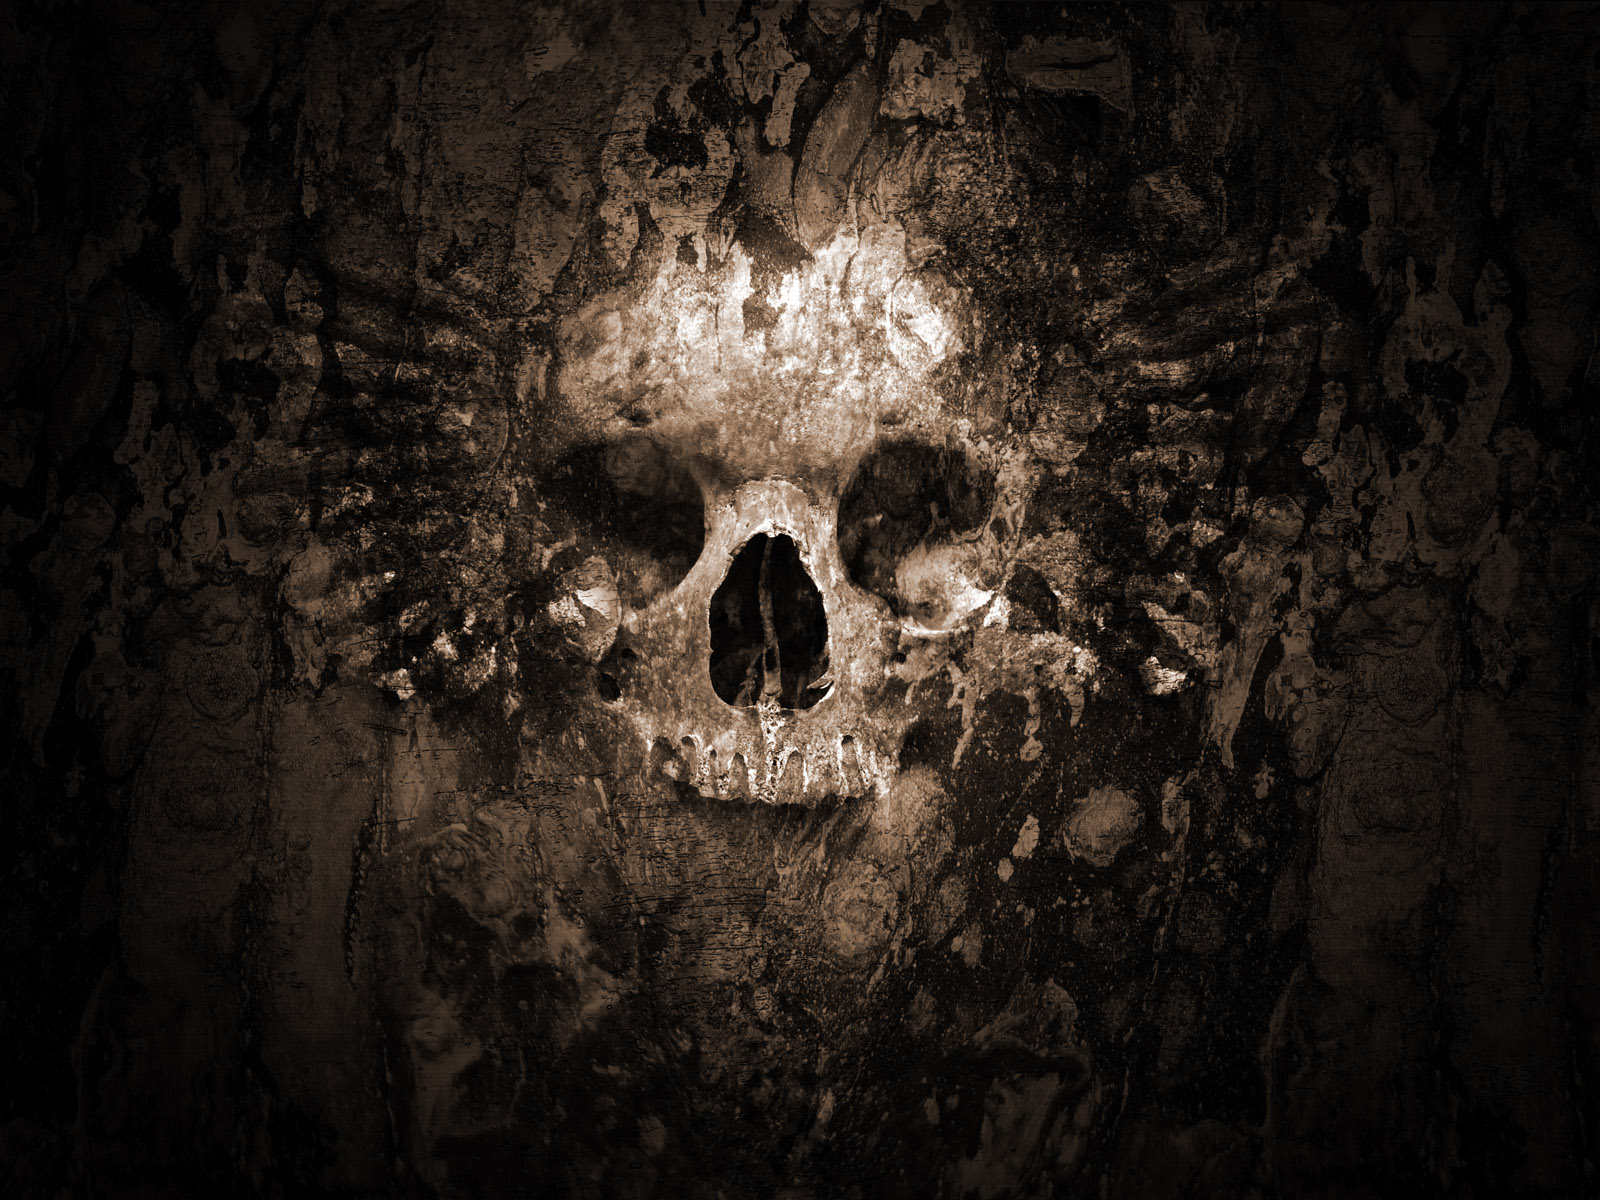 Here we have some cool skull wallpapers for your desktop computer background